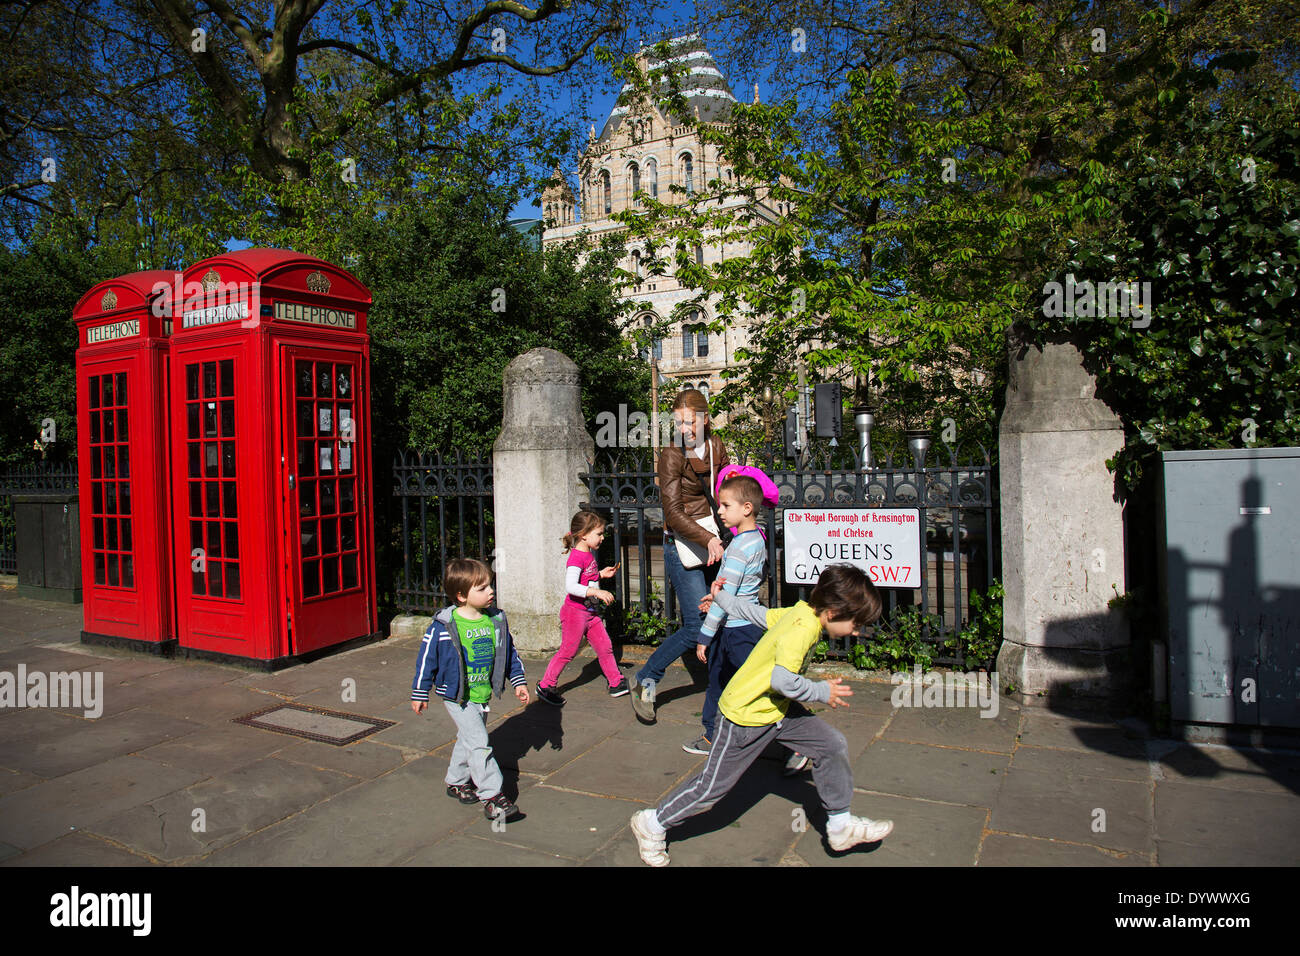 Family playing in the street by two red telephone boxes outside the Natural History Museum in South Kensington. London, UK. - Stock Image